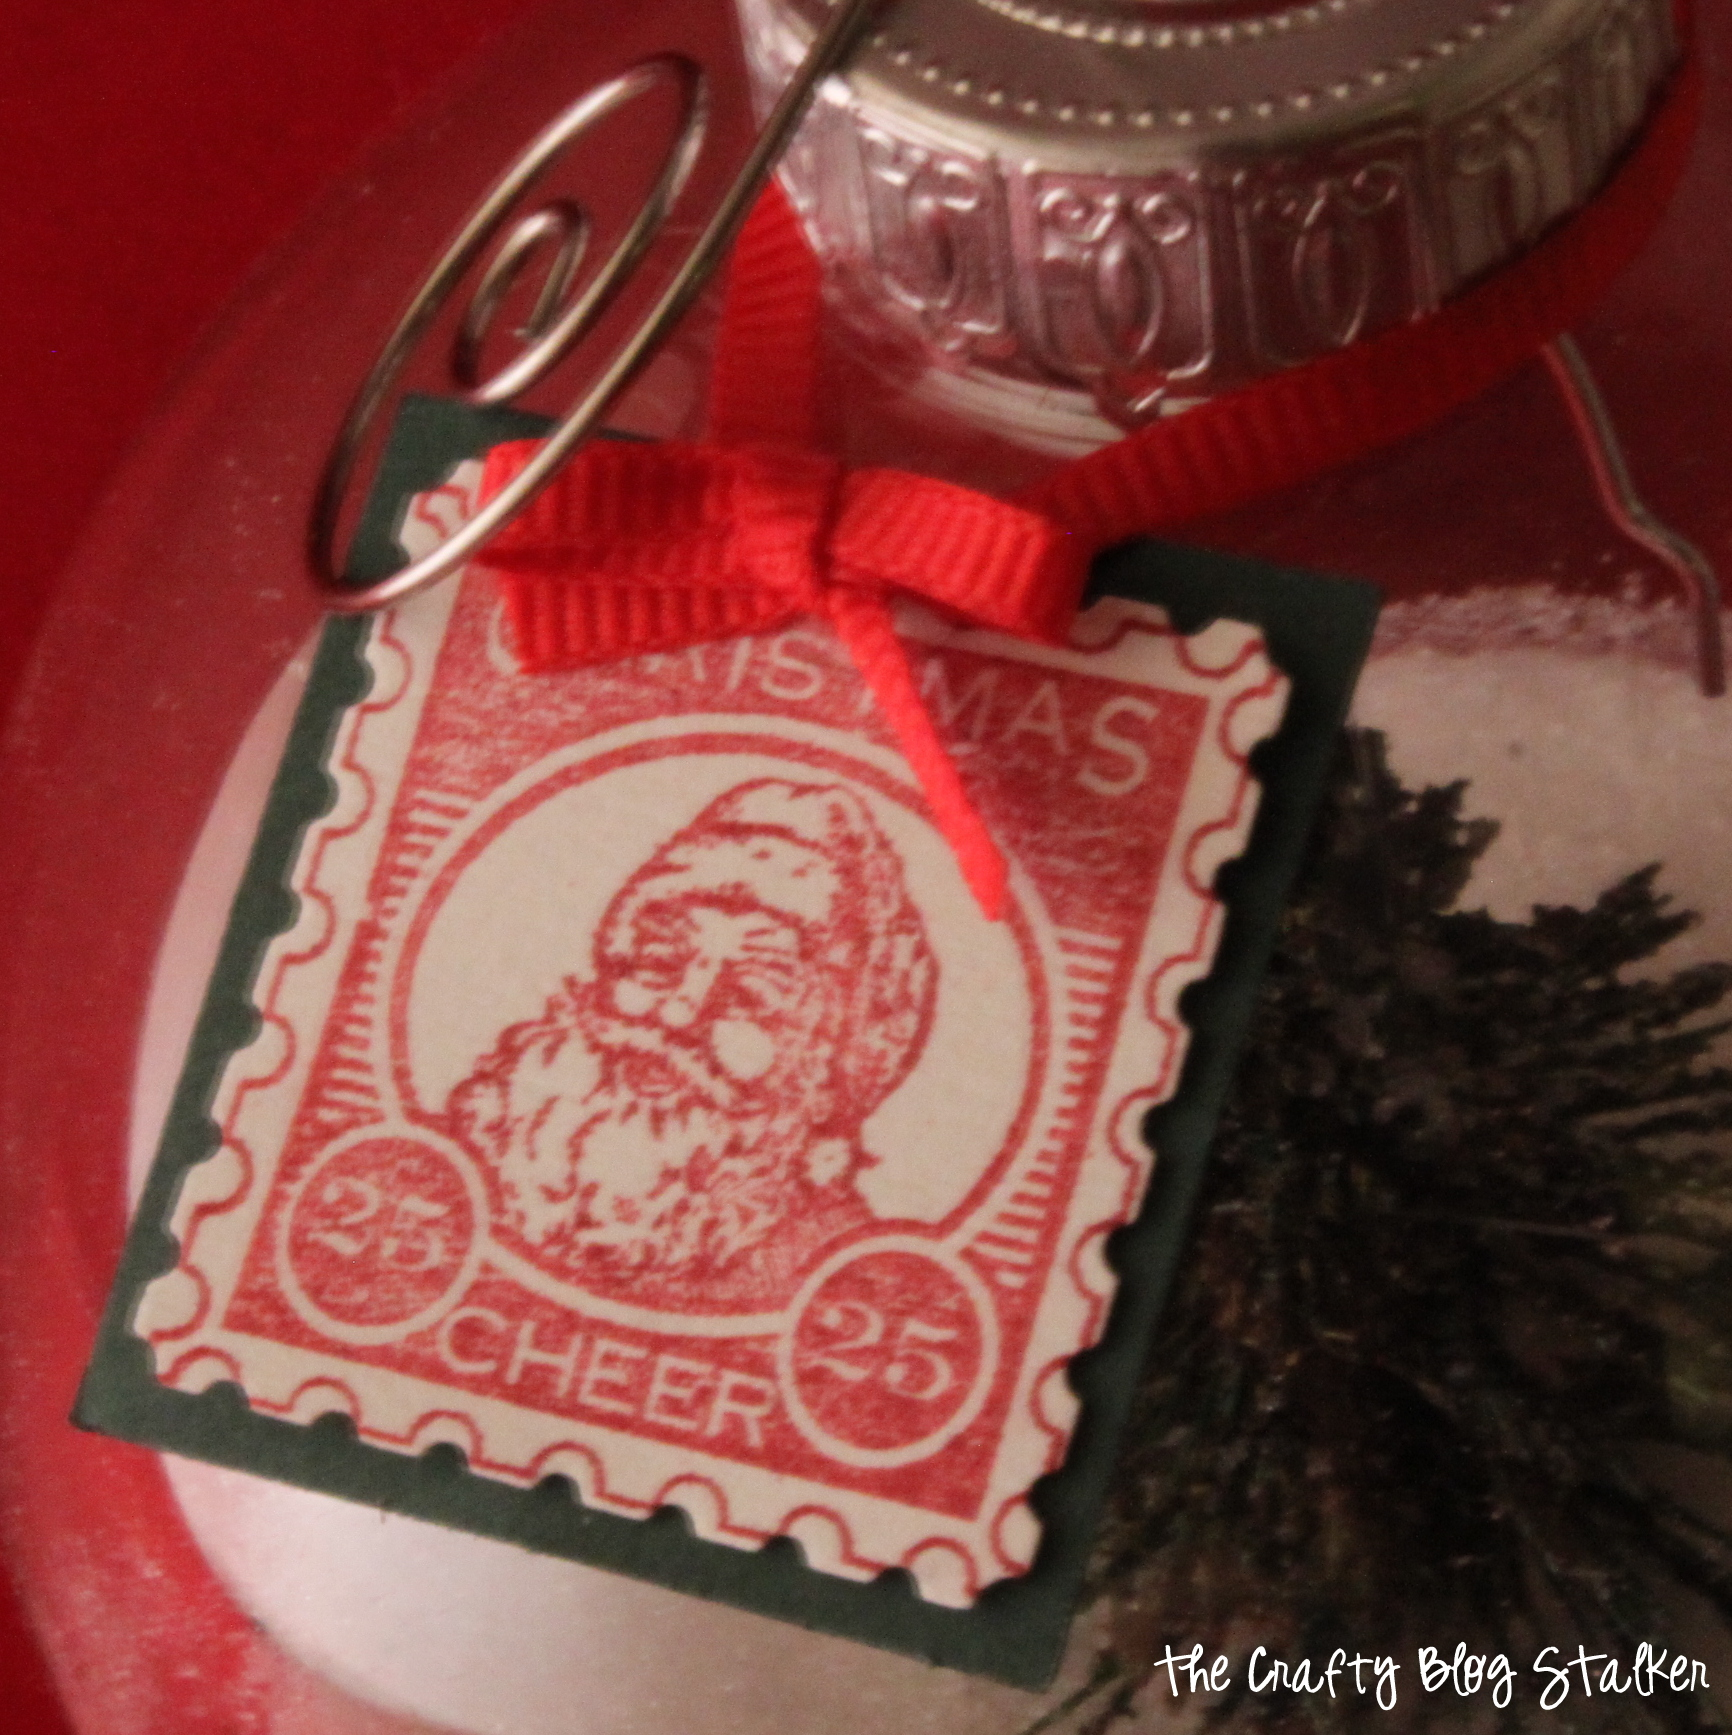 Make a beautiful Christmas Tree Snow Globe to hang on your tree this year. A keepsake ornament that you can enjoy year after year, and you made it, making it even more special!